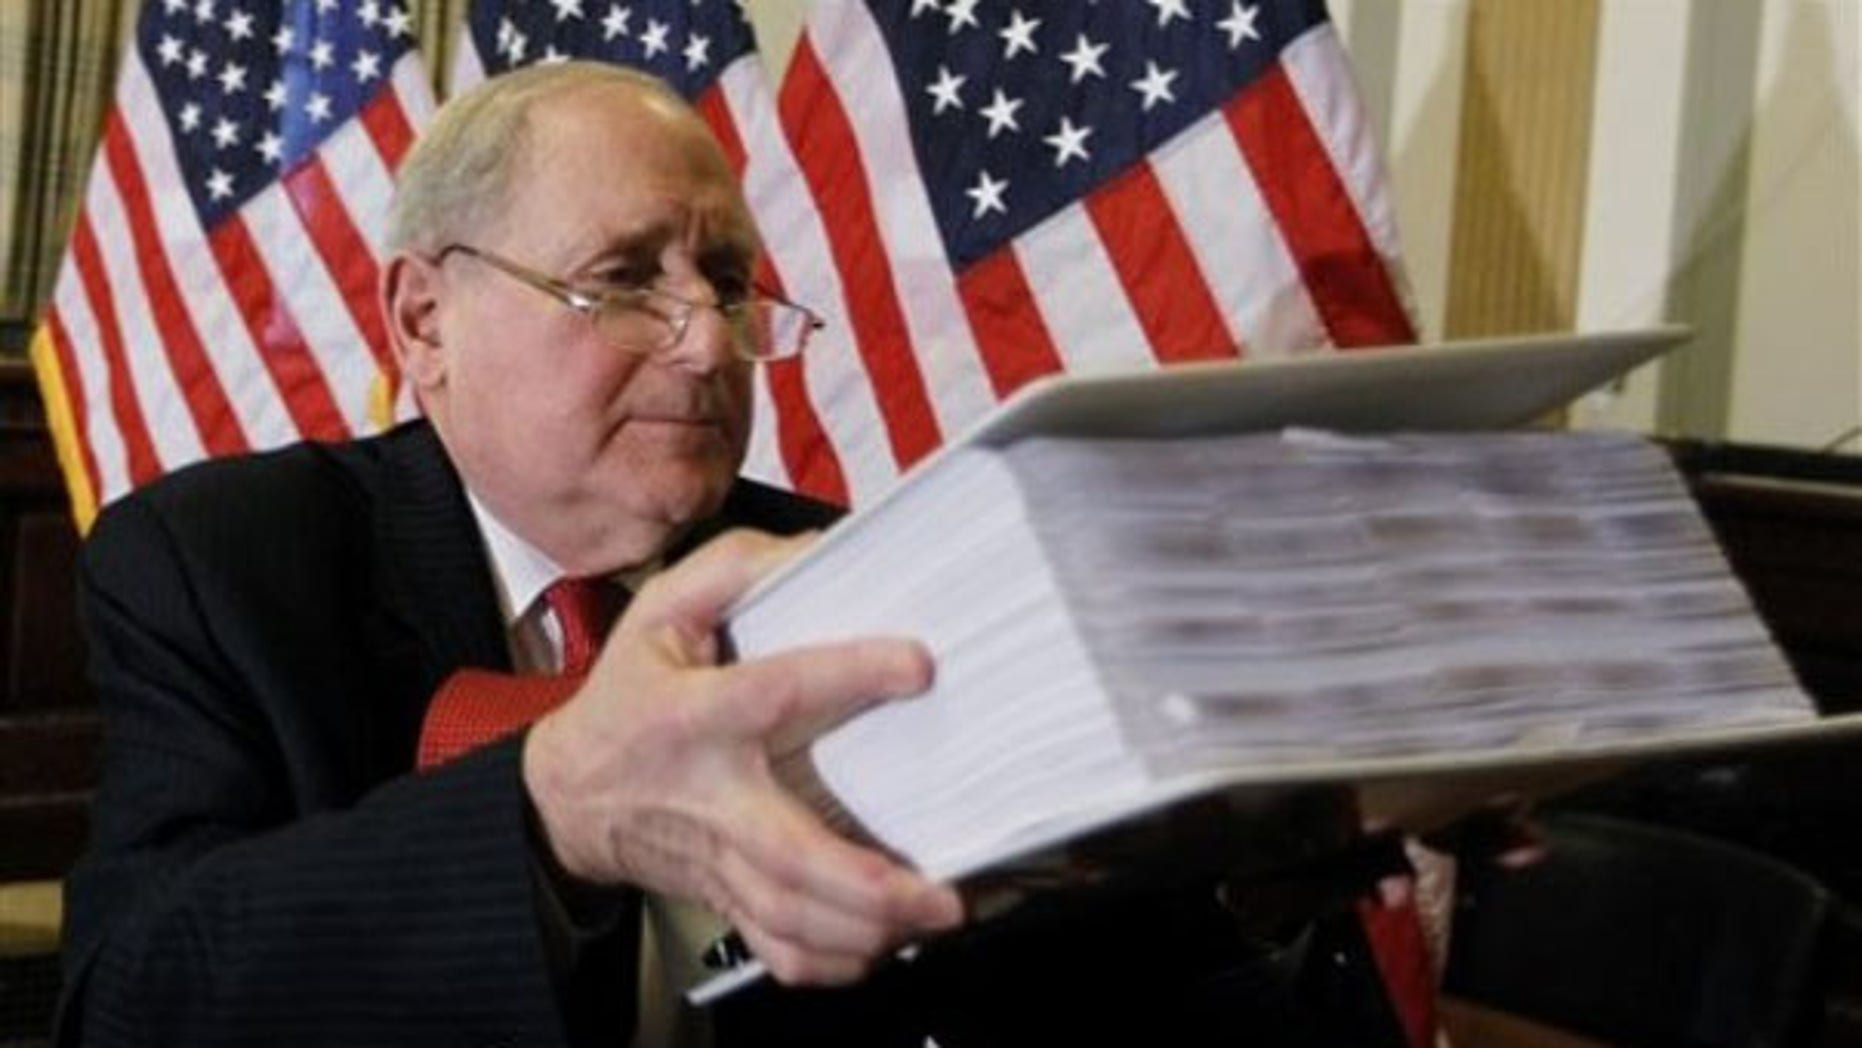 Sen. Carl Levin lifts documents on the role of investment banks in the Wall Street financial crisis as he briefs reporters on Capitol Hill April 26 ahead of the Goldman Sachs hearings. (AP Photo)